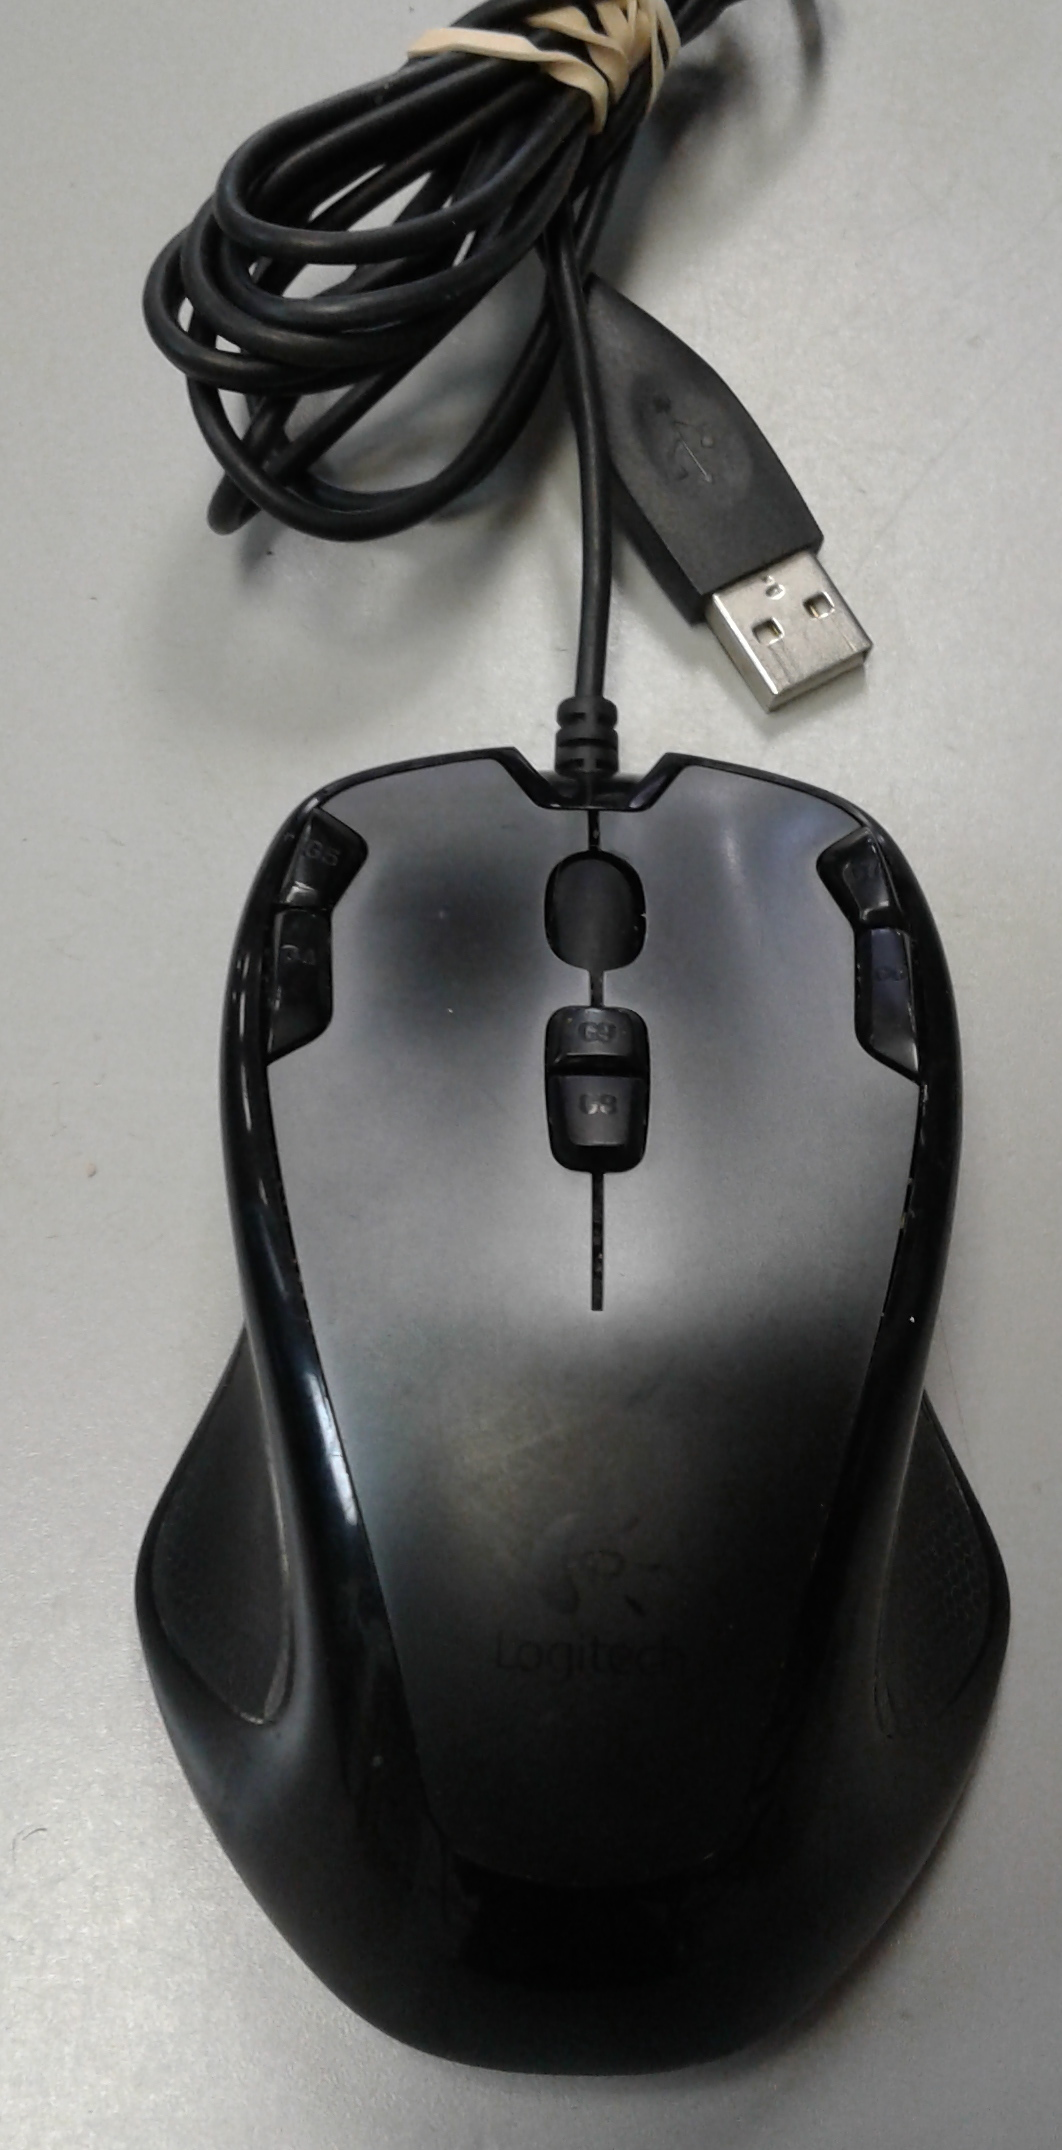 LOGITECH G300 RED MOUSE